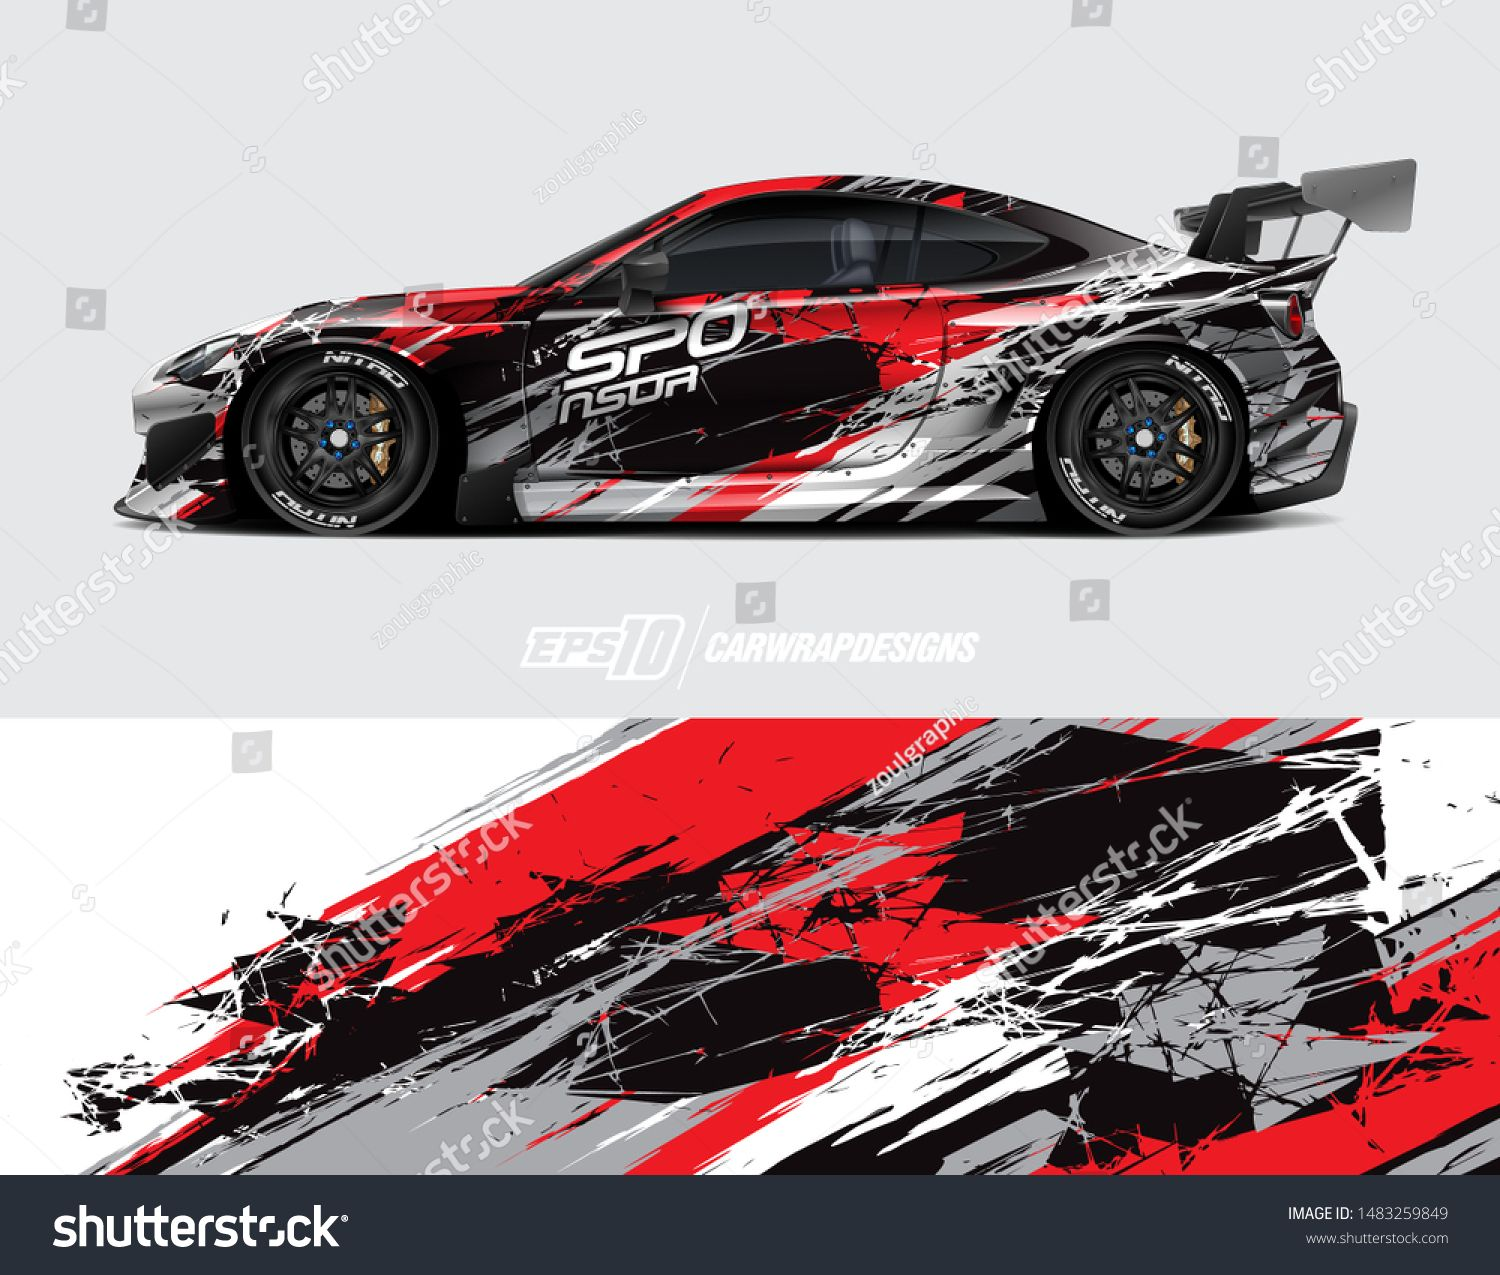 Car Graphic Design Concept Graphic Abstract Grunge Stripe Designs For Wrapping Vehicles Race Car Cargo V Concept Design Car Sticker Design Car Design Sketch